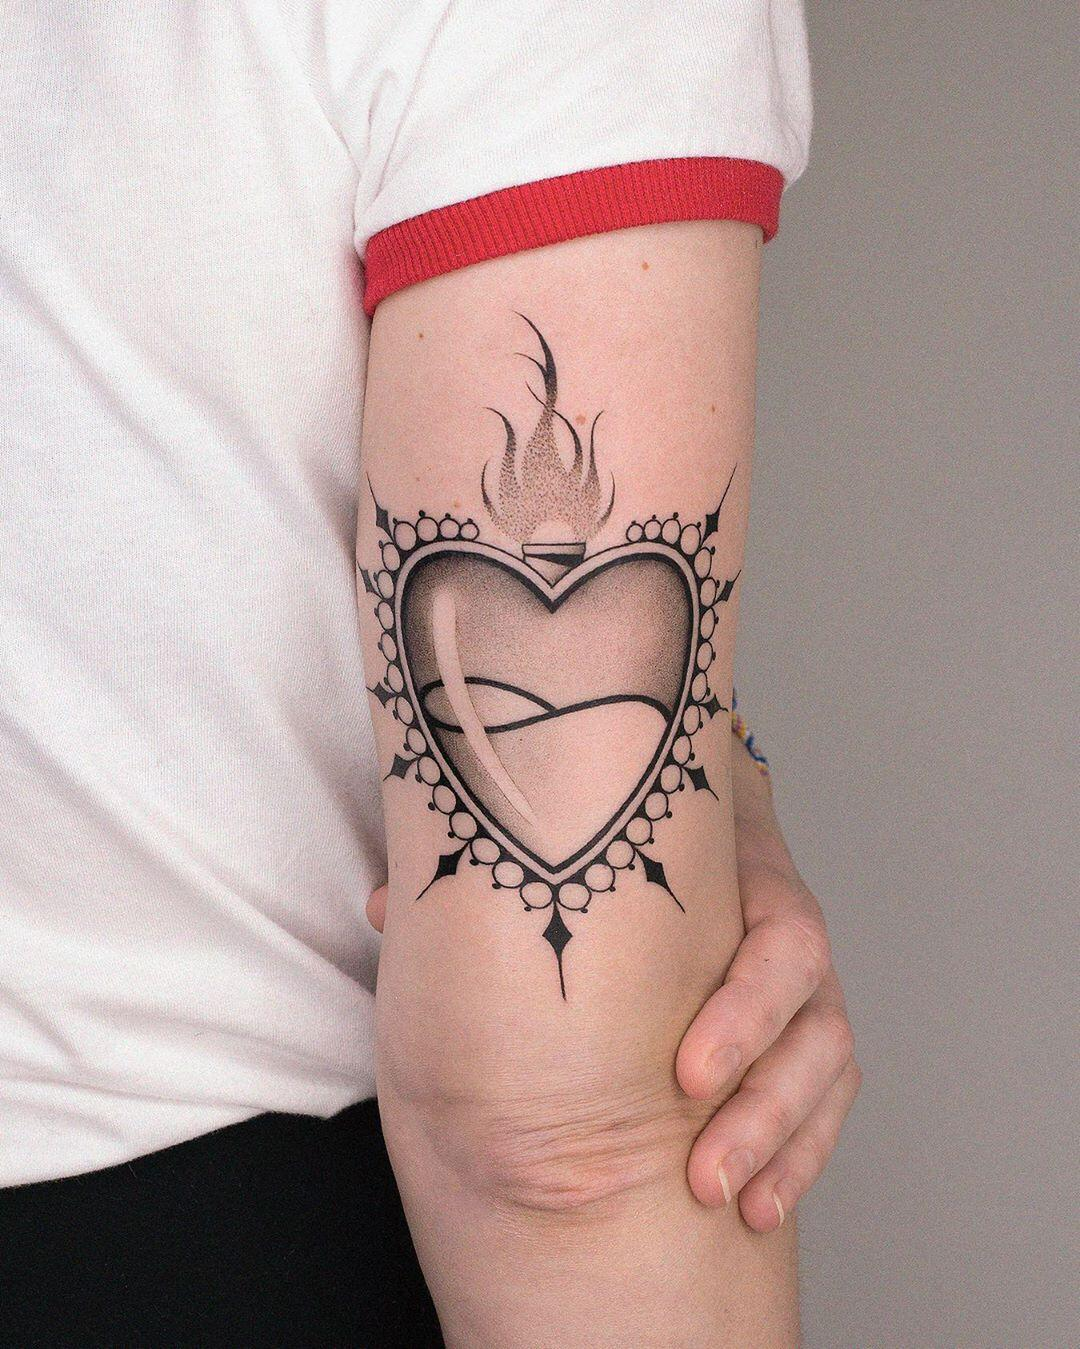 Another sacred heart by @xavtattoo